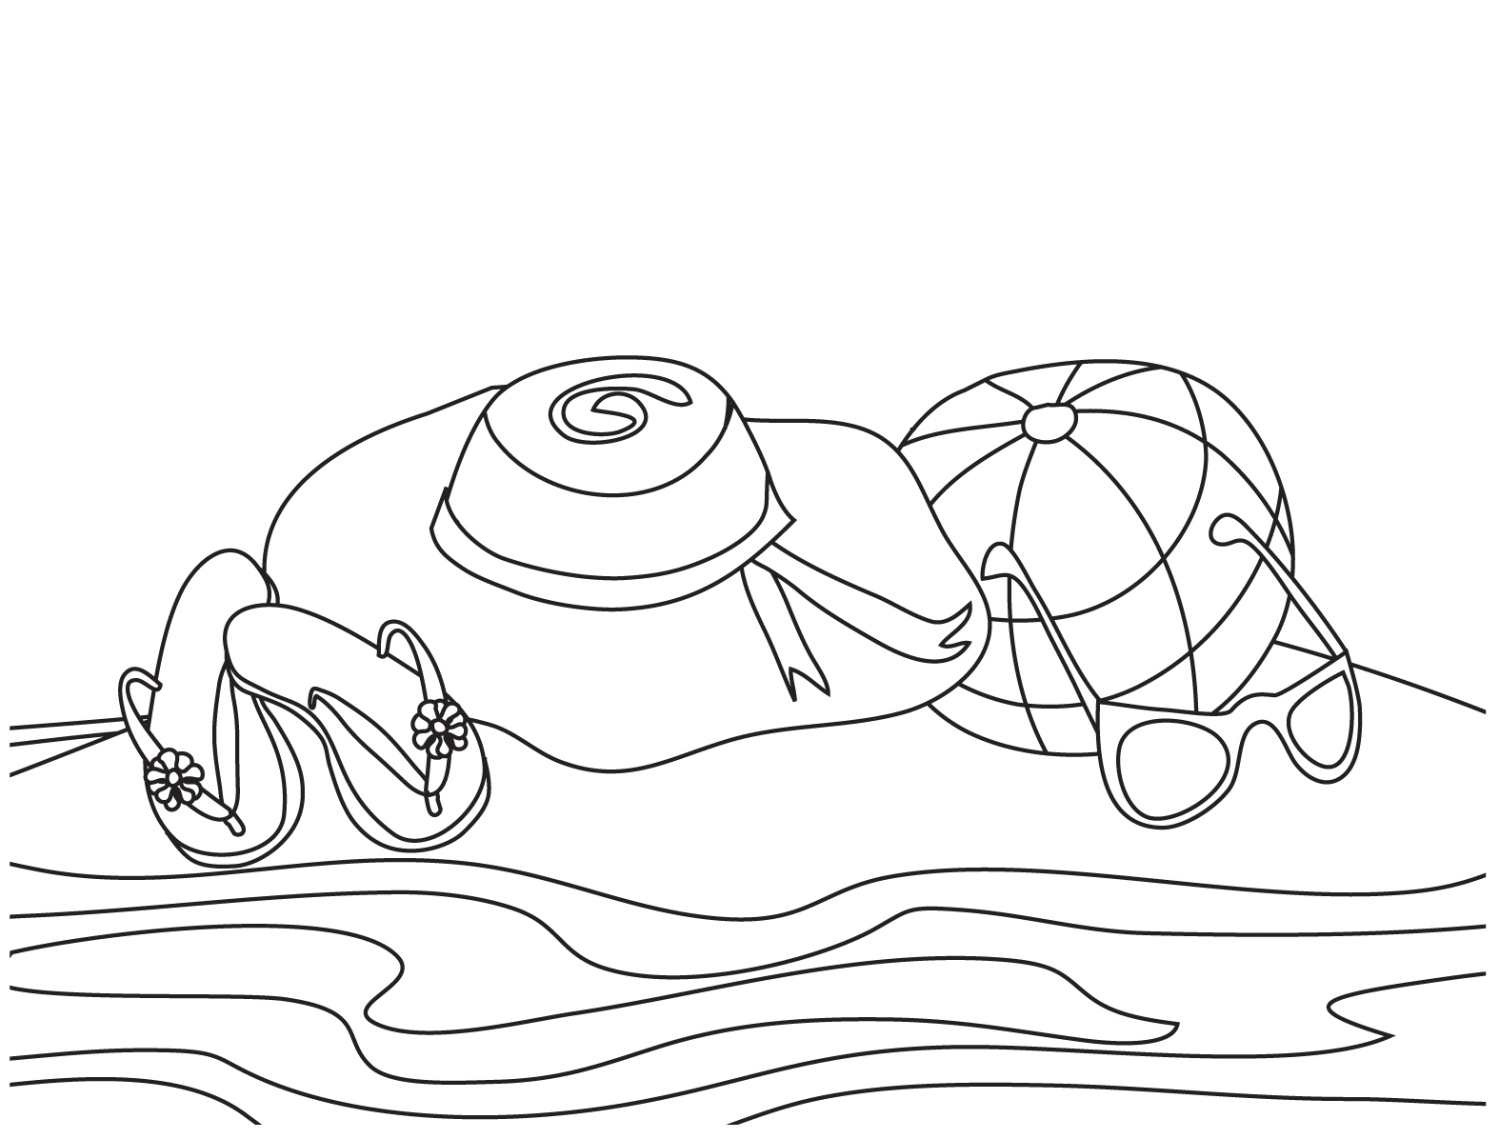 colouring pages of beach scene beach coloring pages for kids scene pages beach colouring of